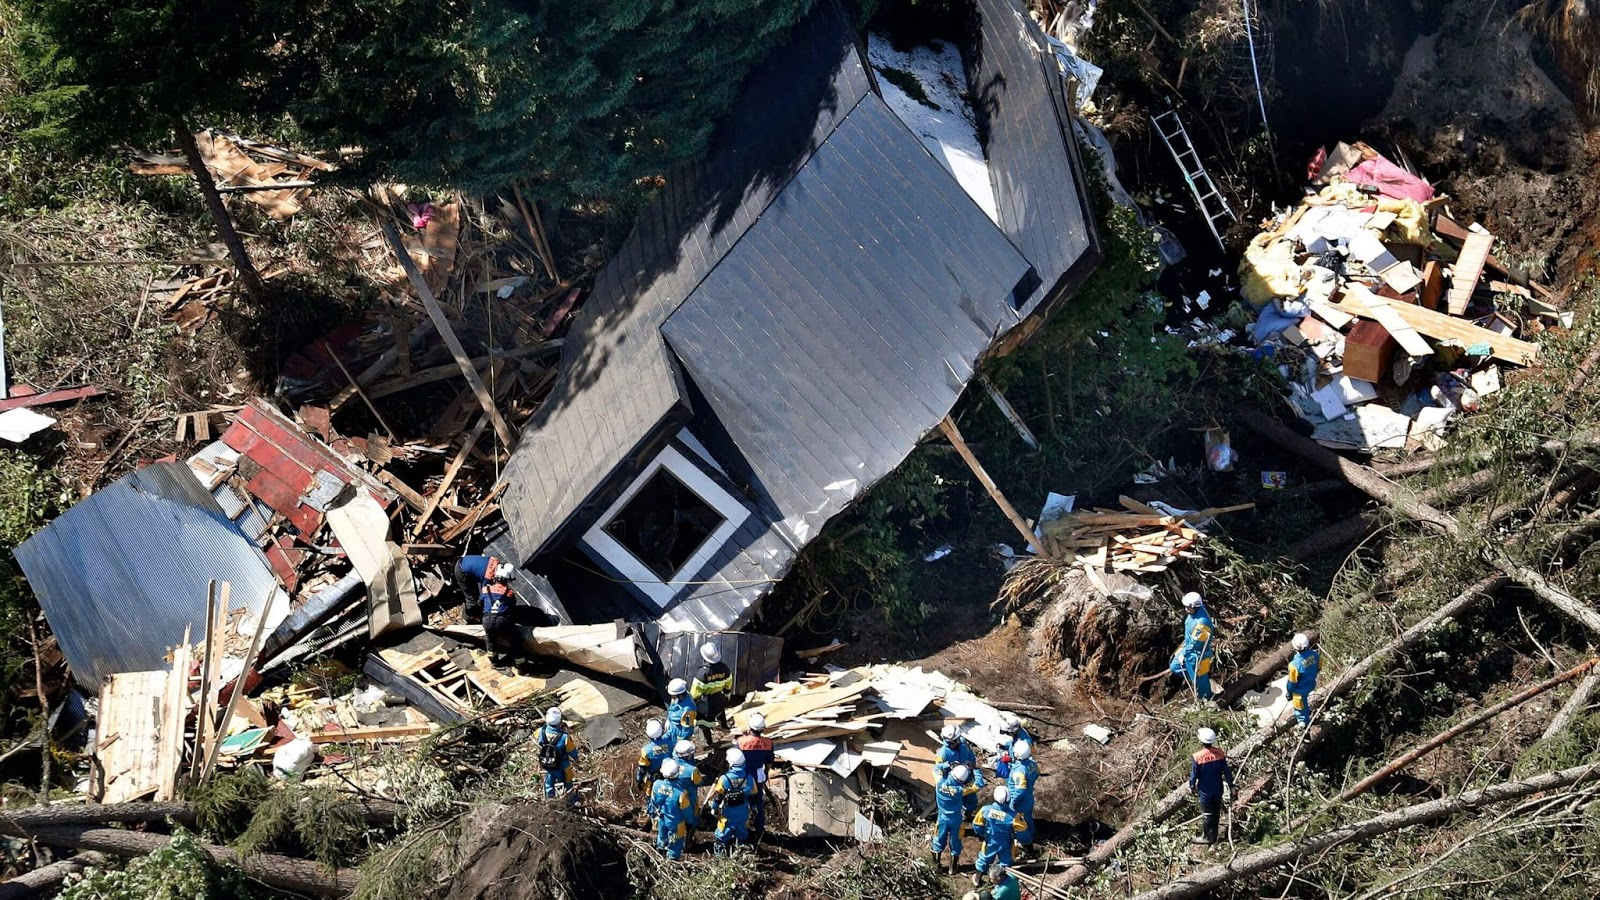 Powerful Earth Quake At Least 7 Dead, Dozens Missing In Japan